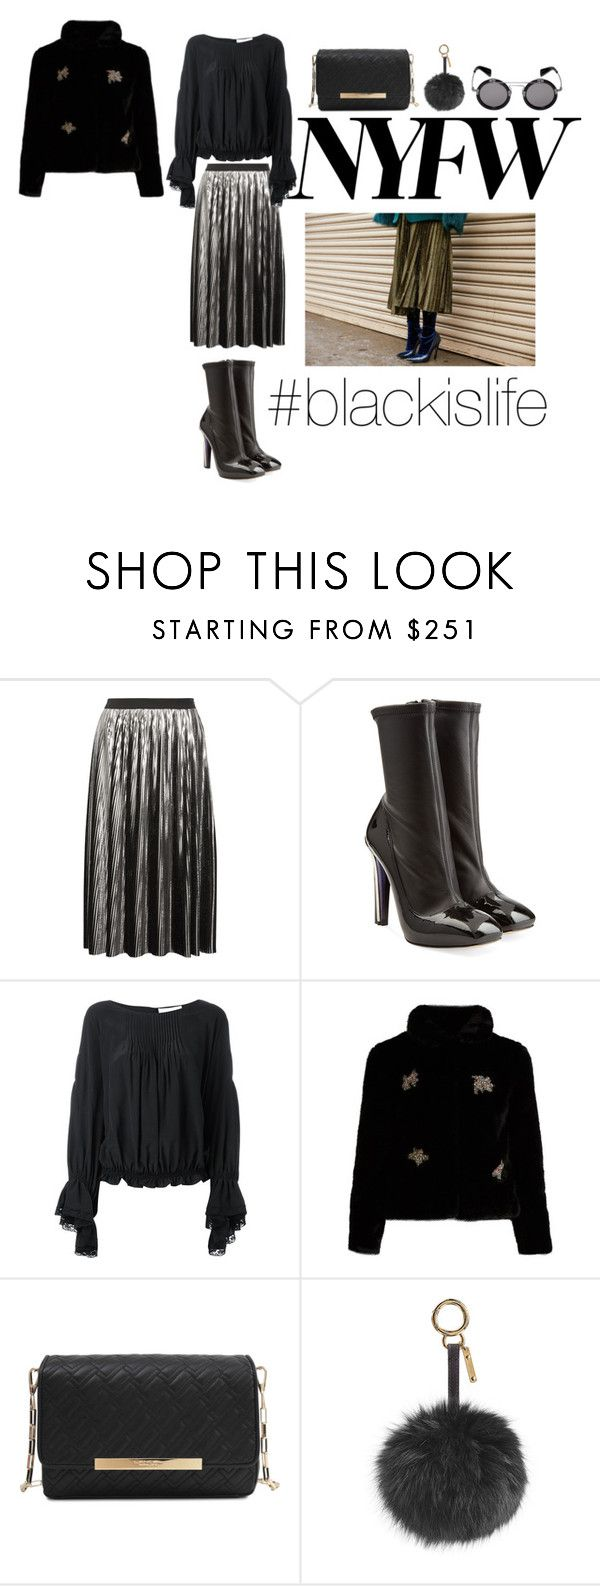 """#blackislife"" by blackislifetag ❤ liked on Polyvore featuring Jil Sander, Alexander McQueen, Chloé, Shrimps, Lancel, Fendi, Yohji Yamamoto, love and BlackisLife"